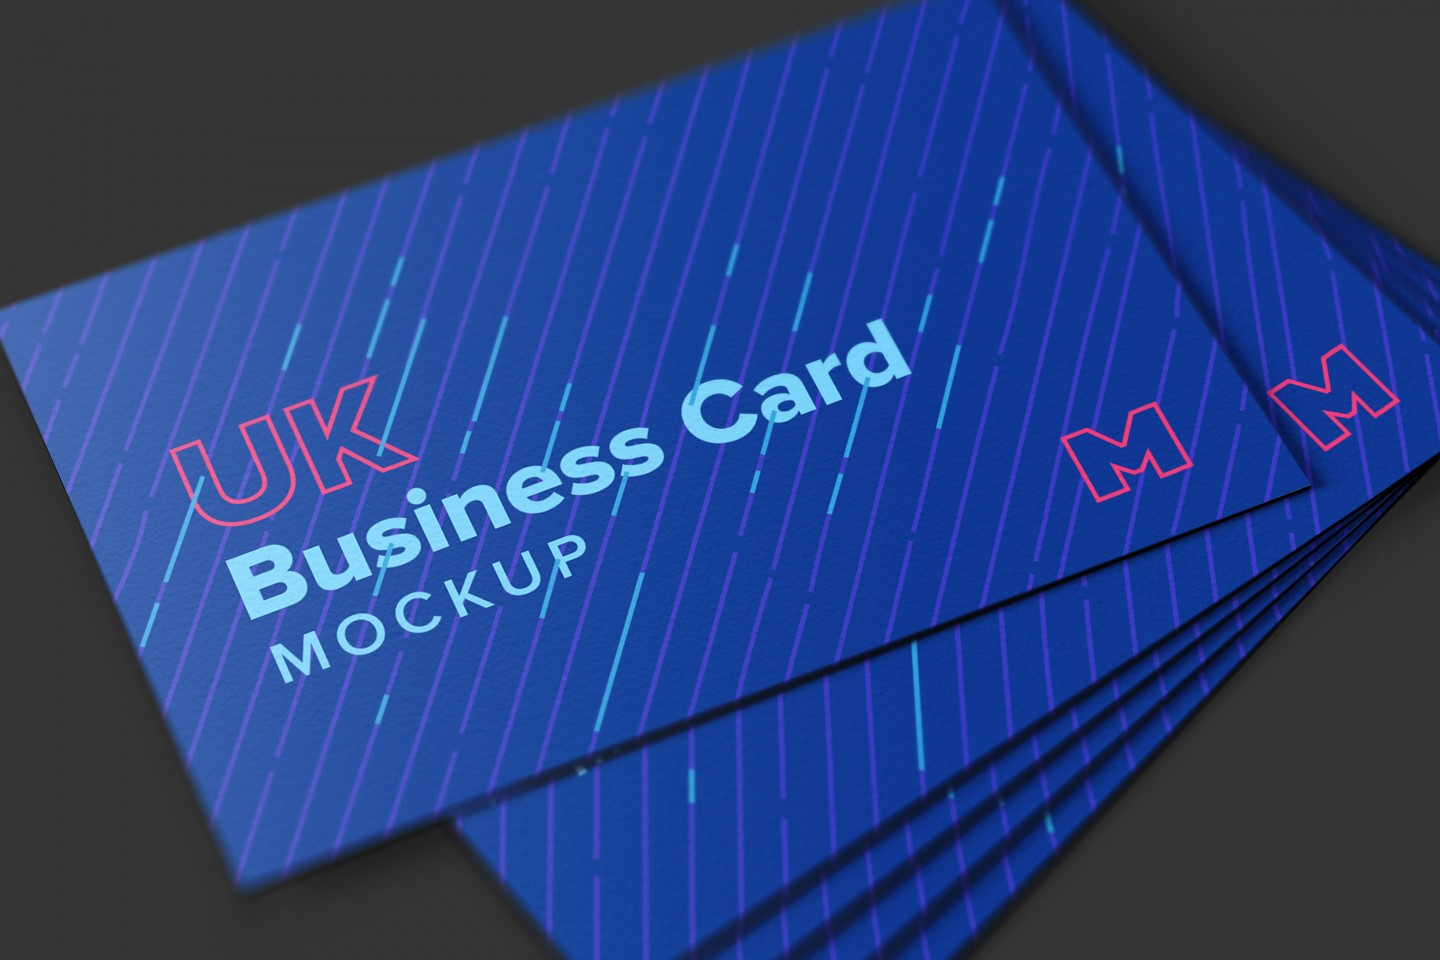 UK Business Cards Mockup